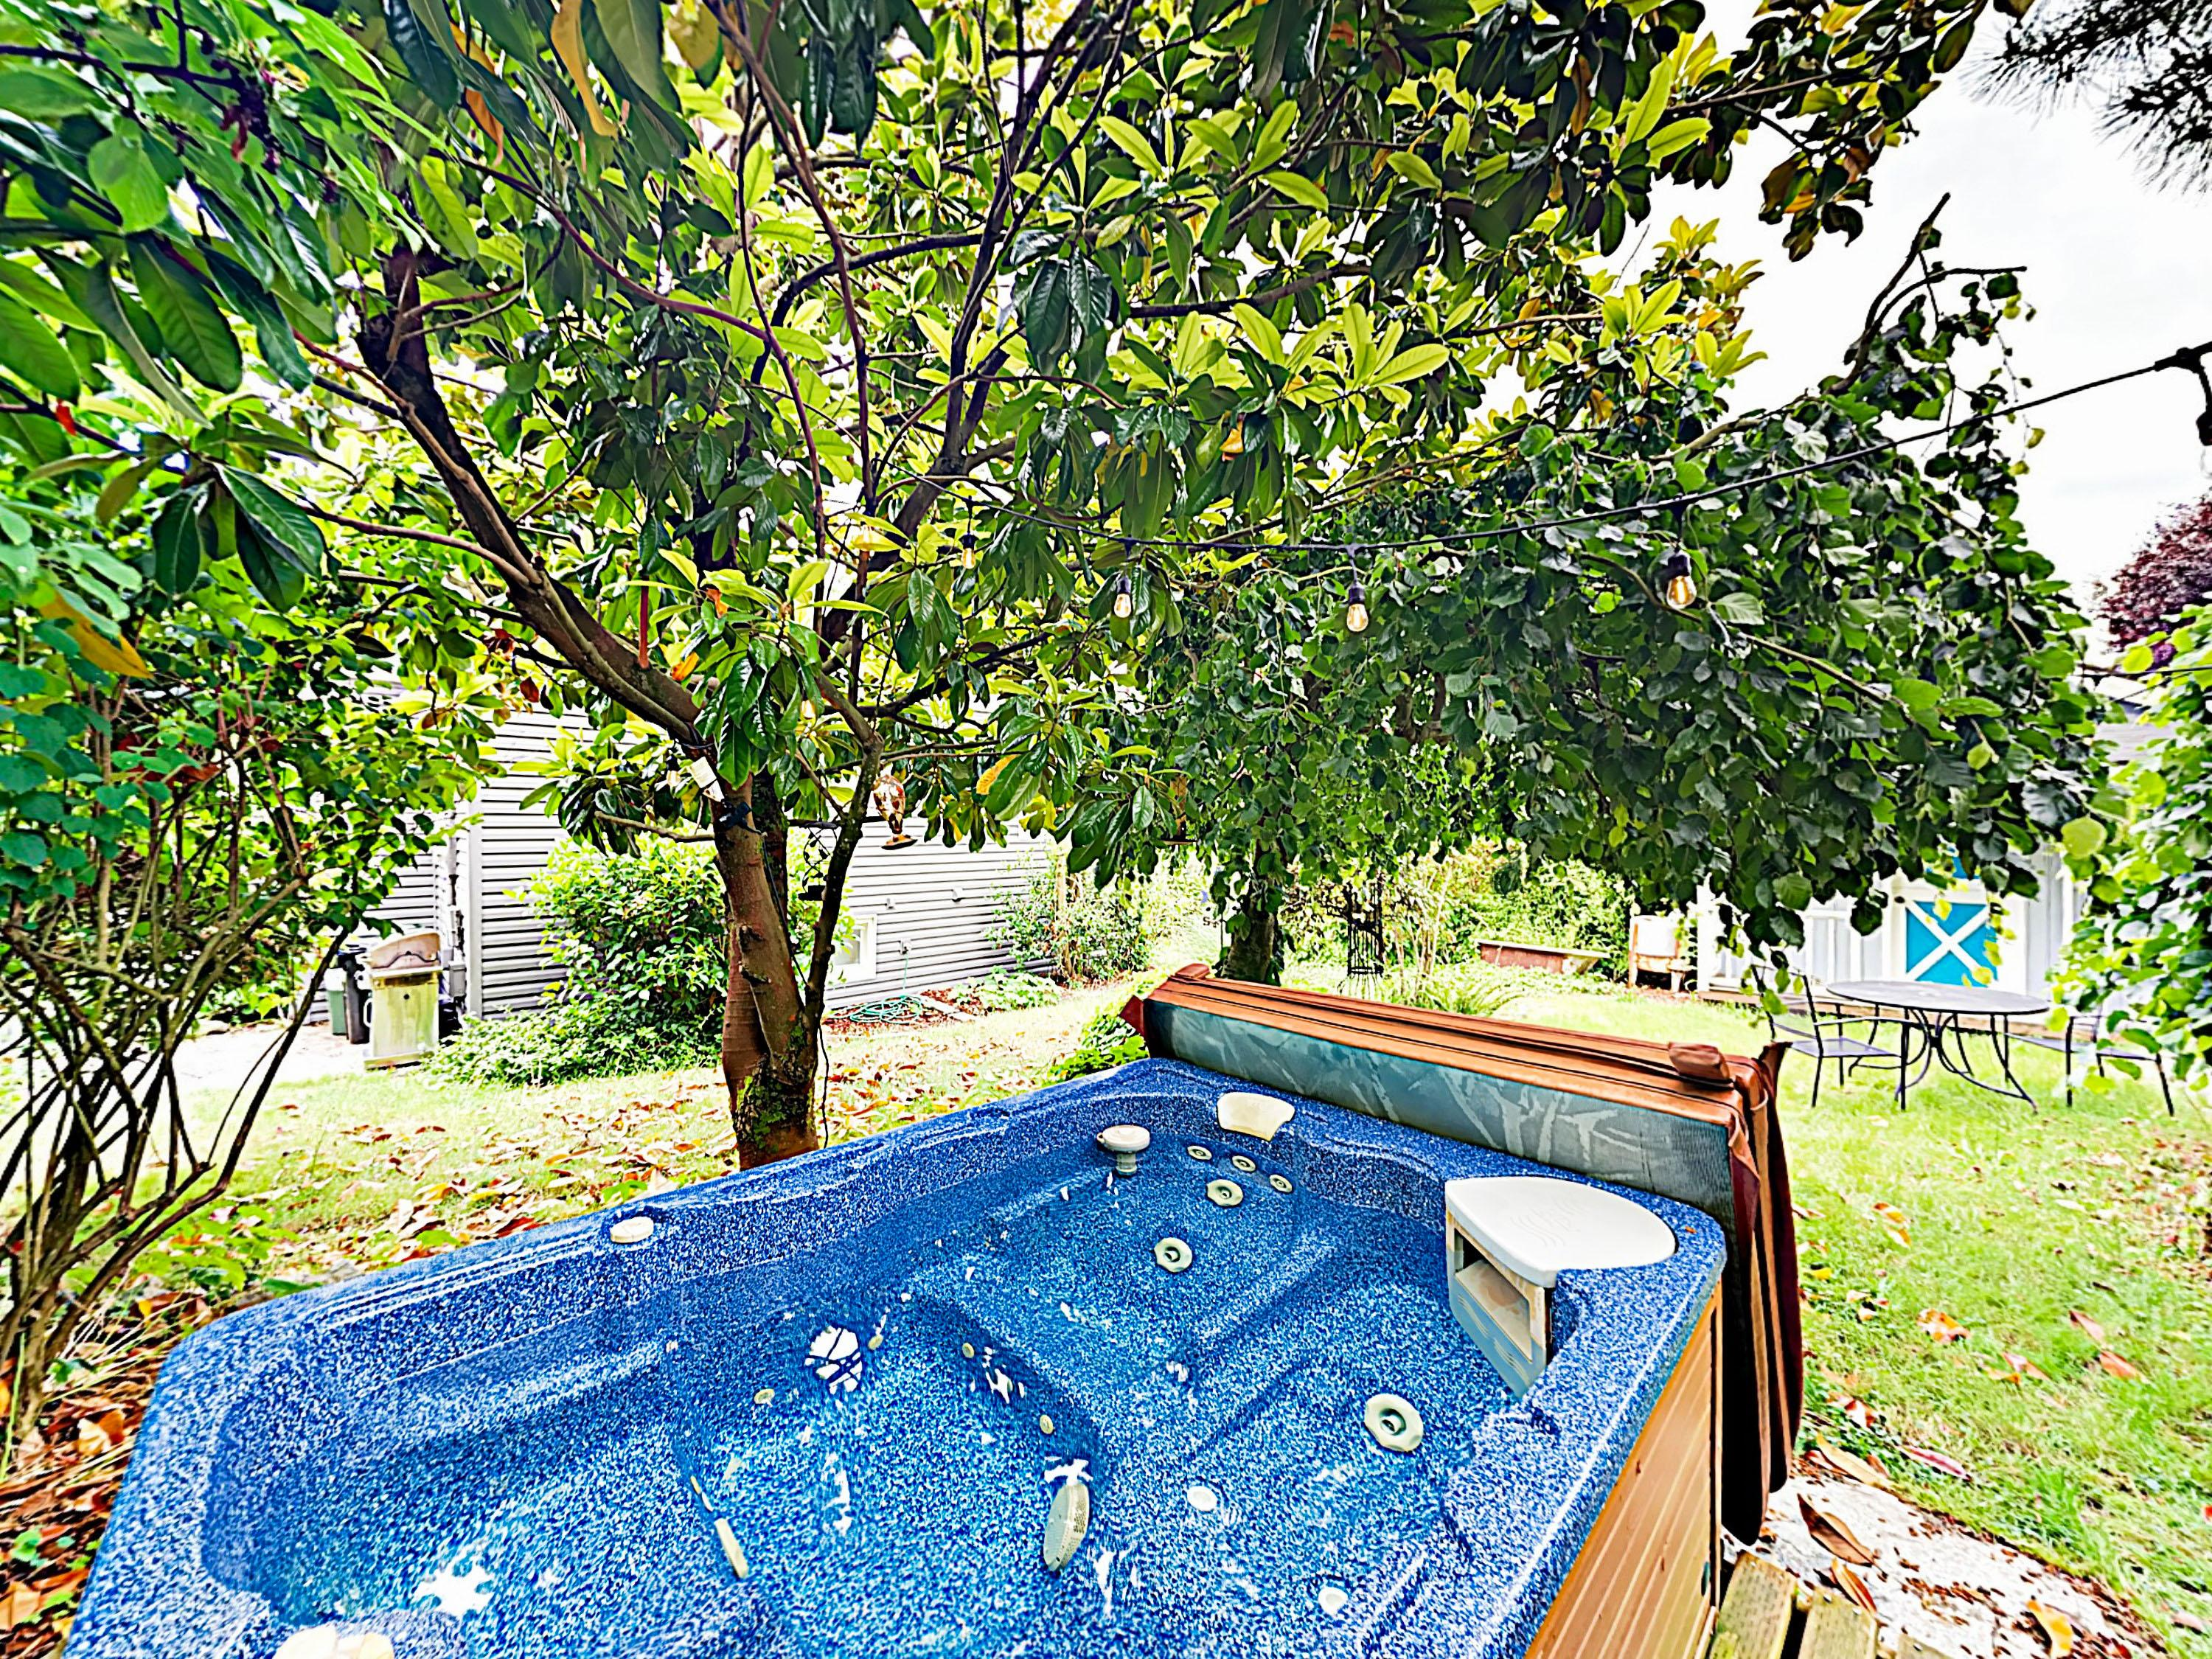 Top off perfect days with a soak in the private hot tub.